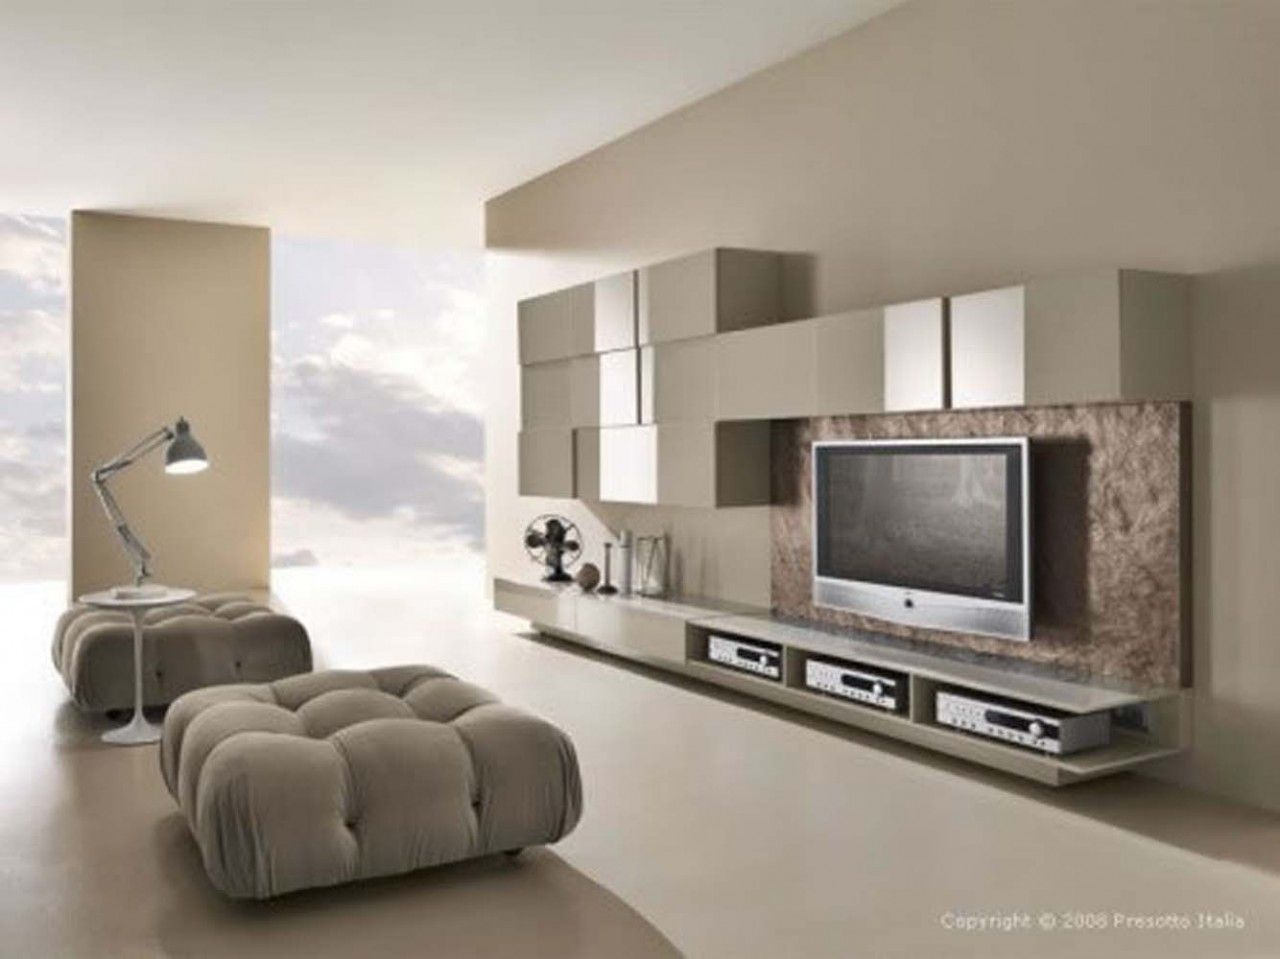 Remarkable Entertainment Room Ideas With Grey Couch And Home Theatre System Living Room Modern Minimalist Living Room Living Room Design Modern